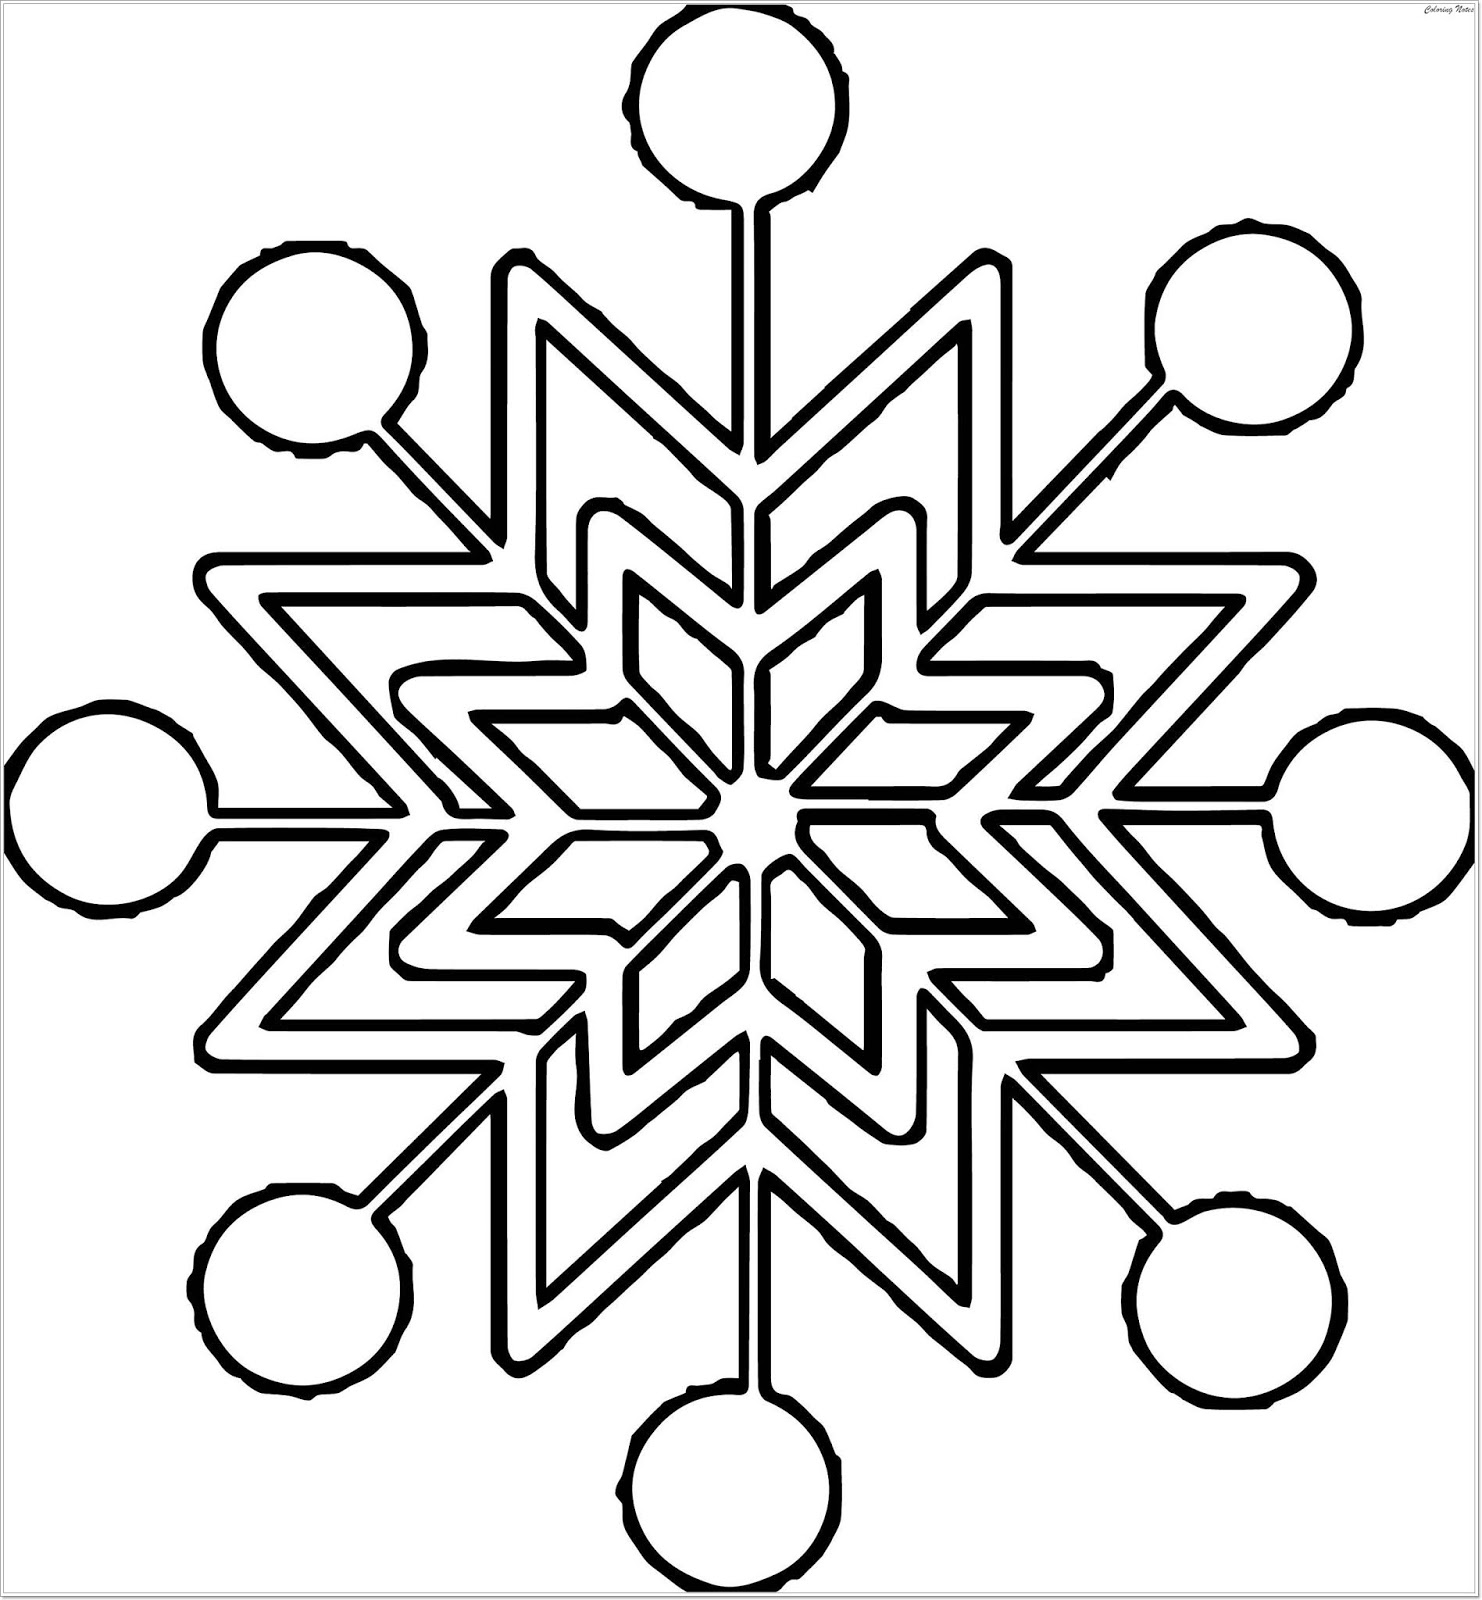 It is an image of Sly snowflakes coloring pages printable